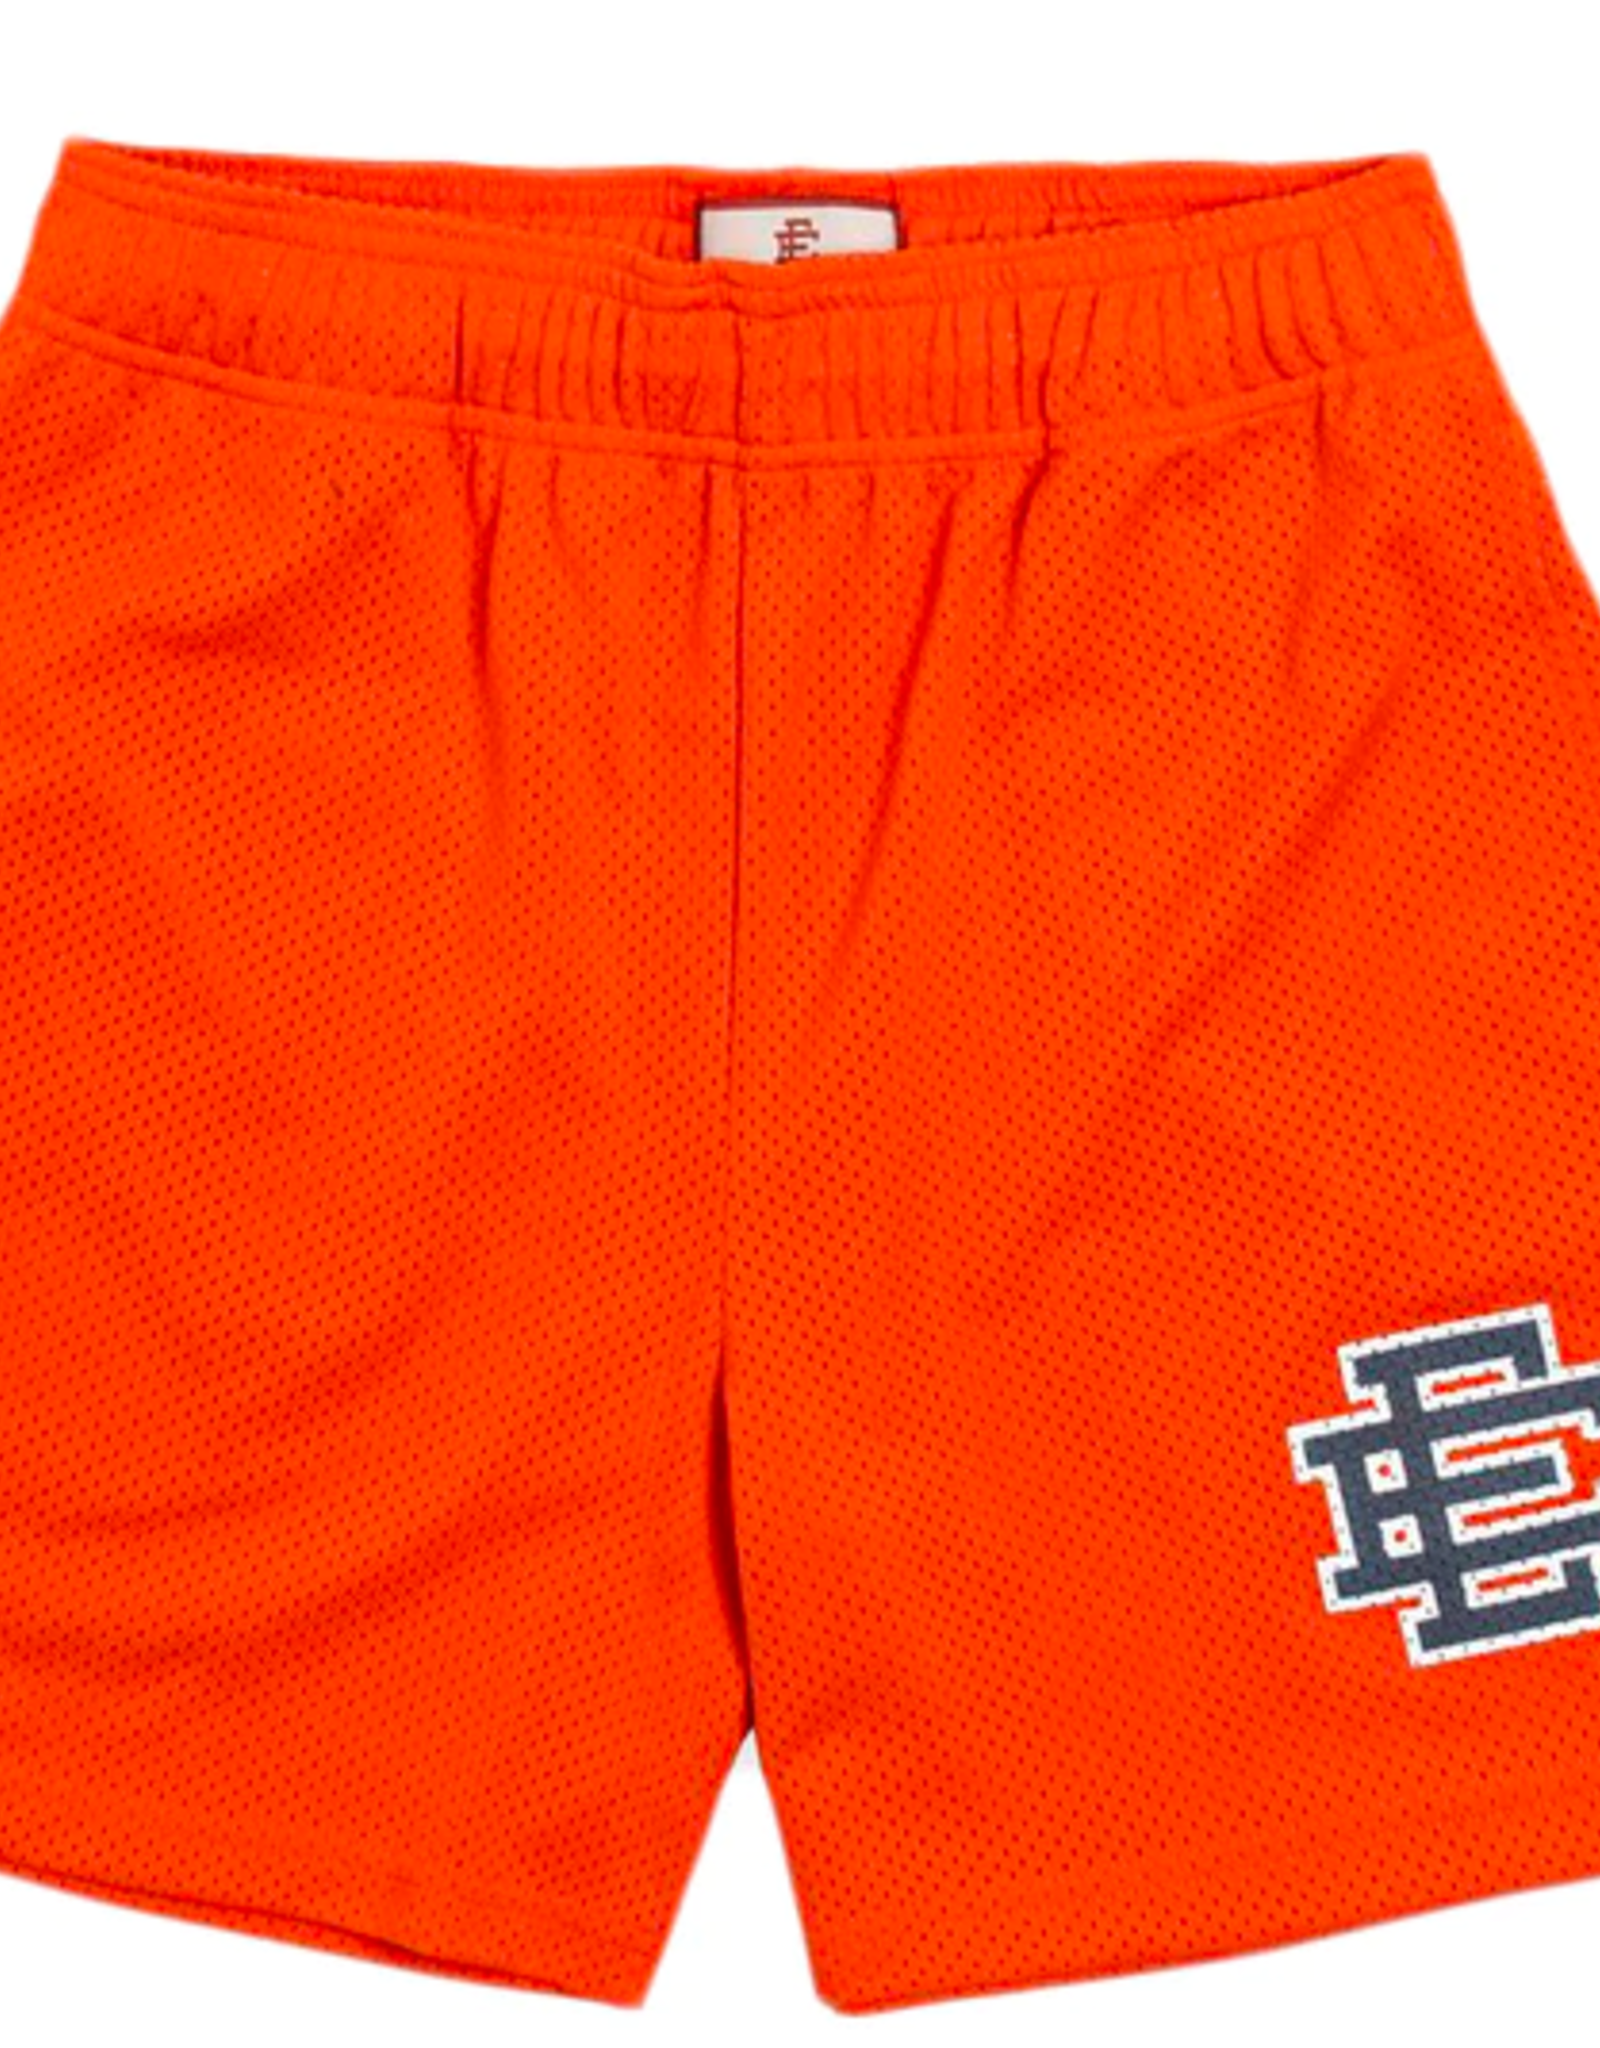 ERIC EMANUEL EE Basic Short Orange/Slate